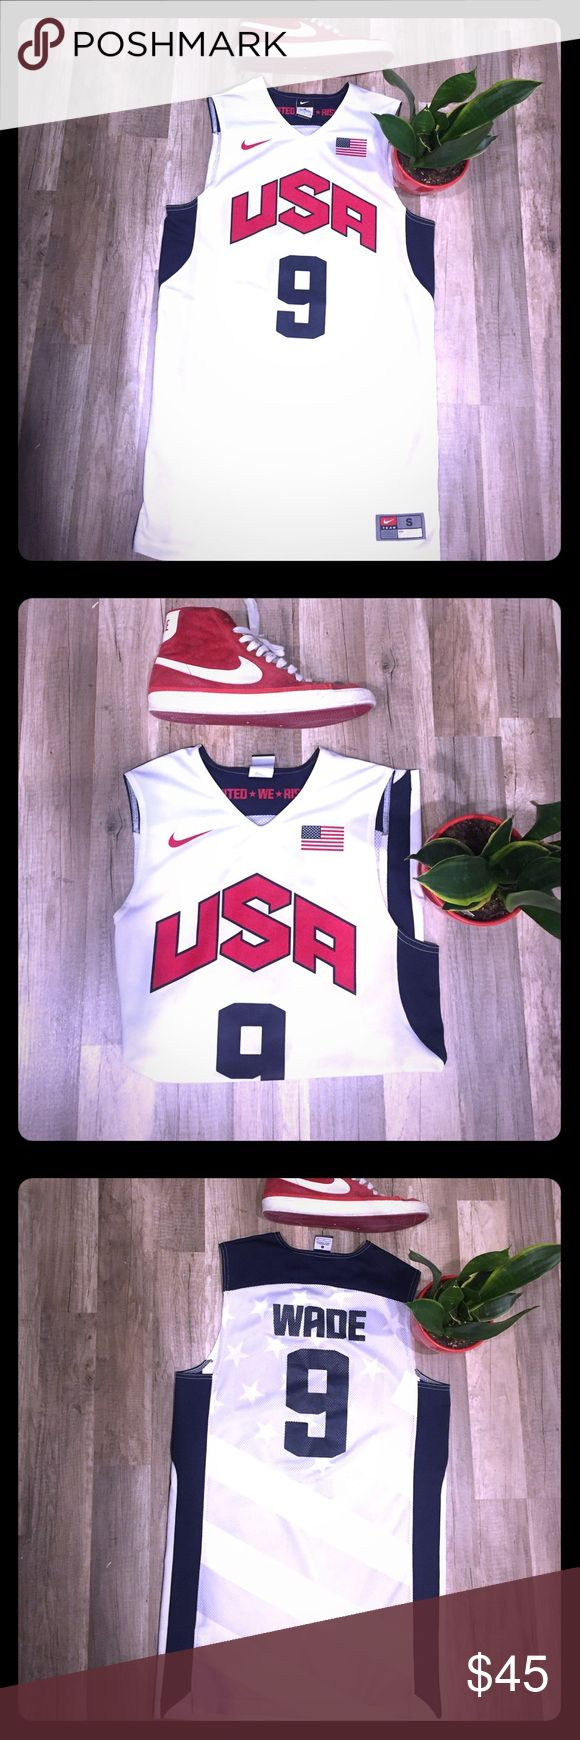 Team USA Dwyane Wade Authentic 2012 Olympic Jersey RARE Olympic Basketball jersey (Only worn a few times) size (small) perfect fit because doesn't drape like a dress... selling because I have a 2016 Olympic kyrie jersey that I like and wear more... if you have any questions or concerns contact me and I will respond ASAP rocky... cheers! Nike Shirts Tank Tops